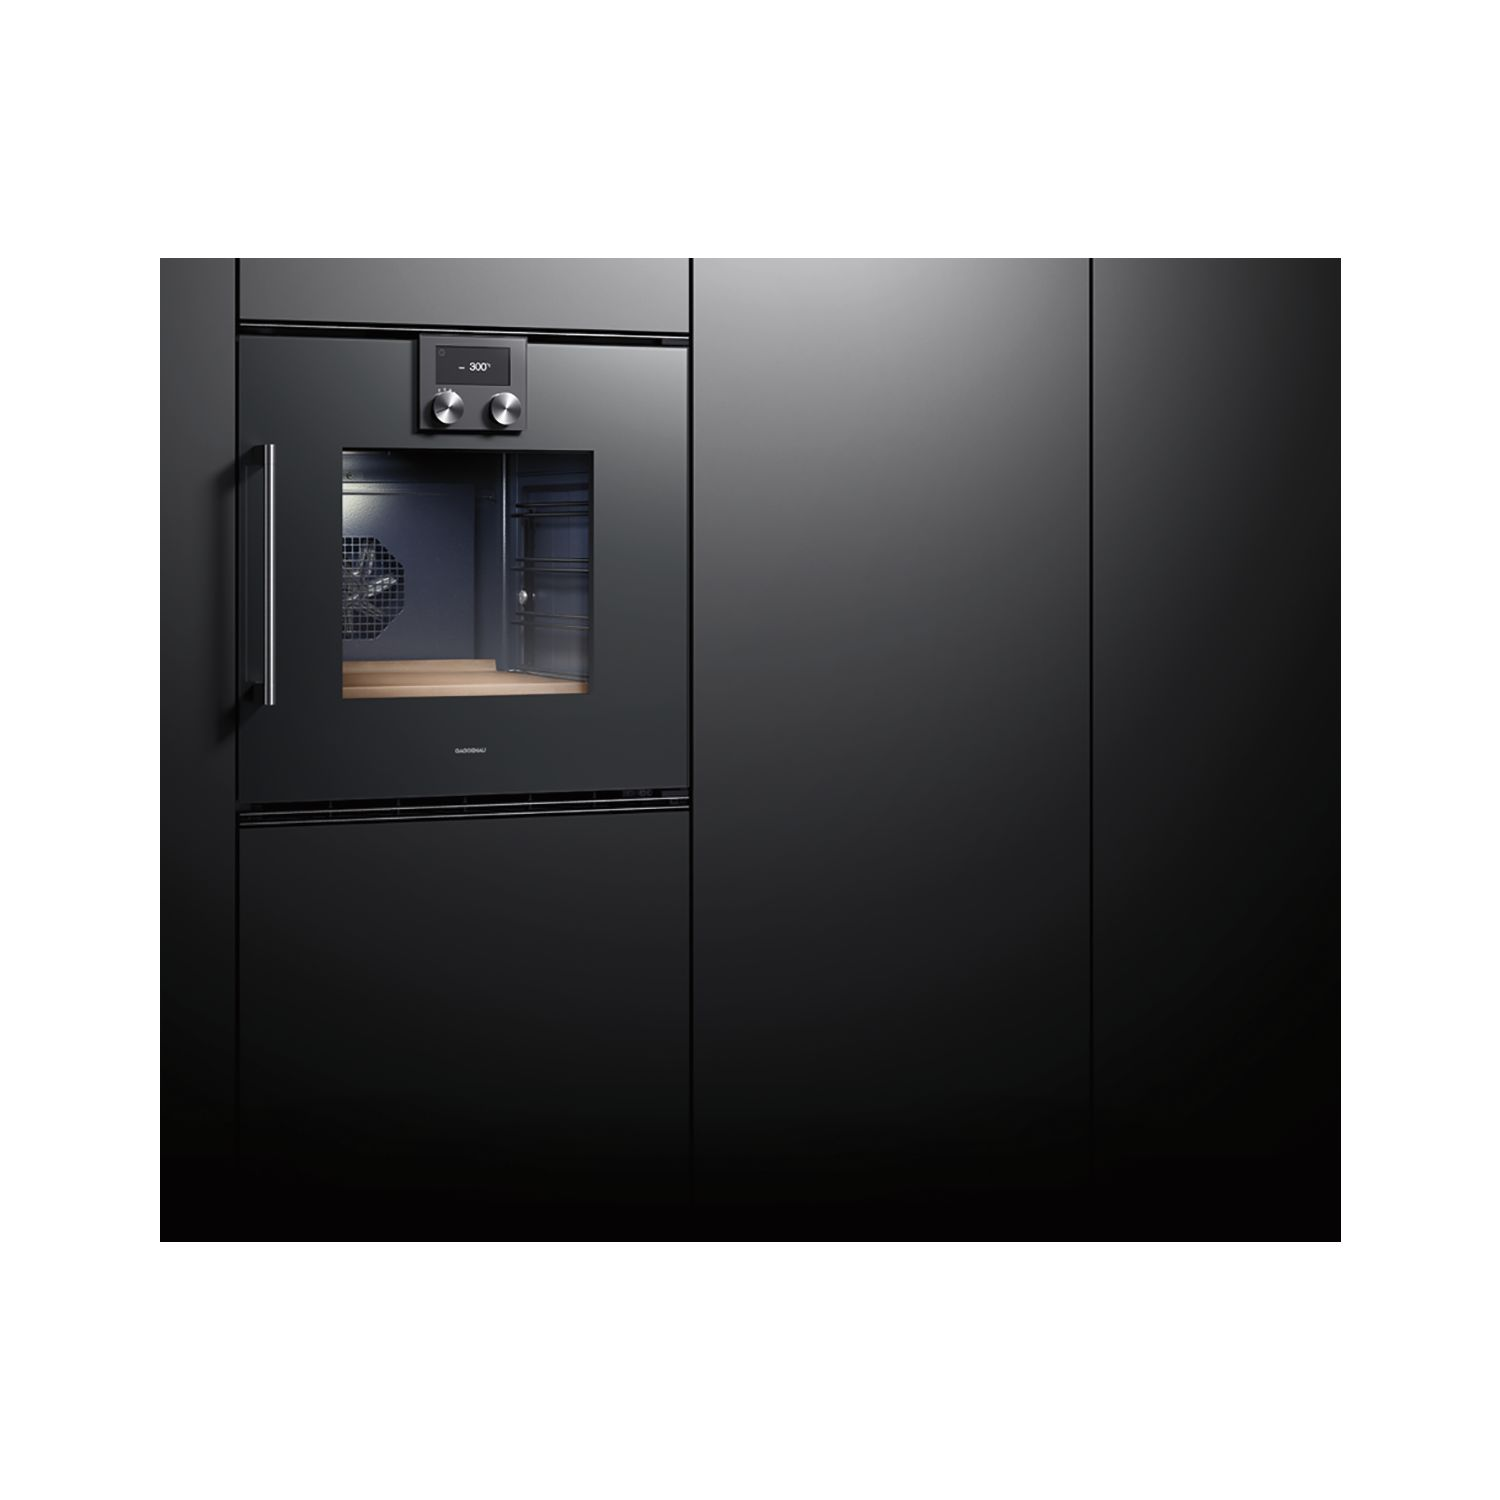 gaggenau backofen bop220101 anthrazit t ranschlag rechts. Black Bedroom Furniture Sets. Home Design Ideas